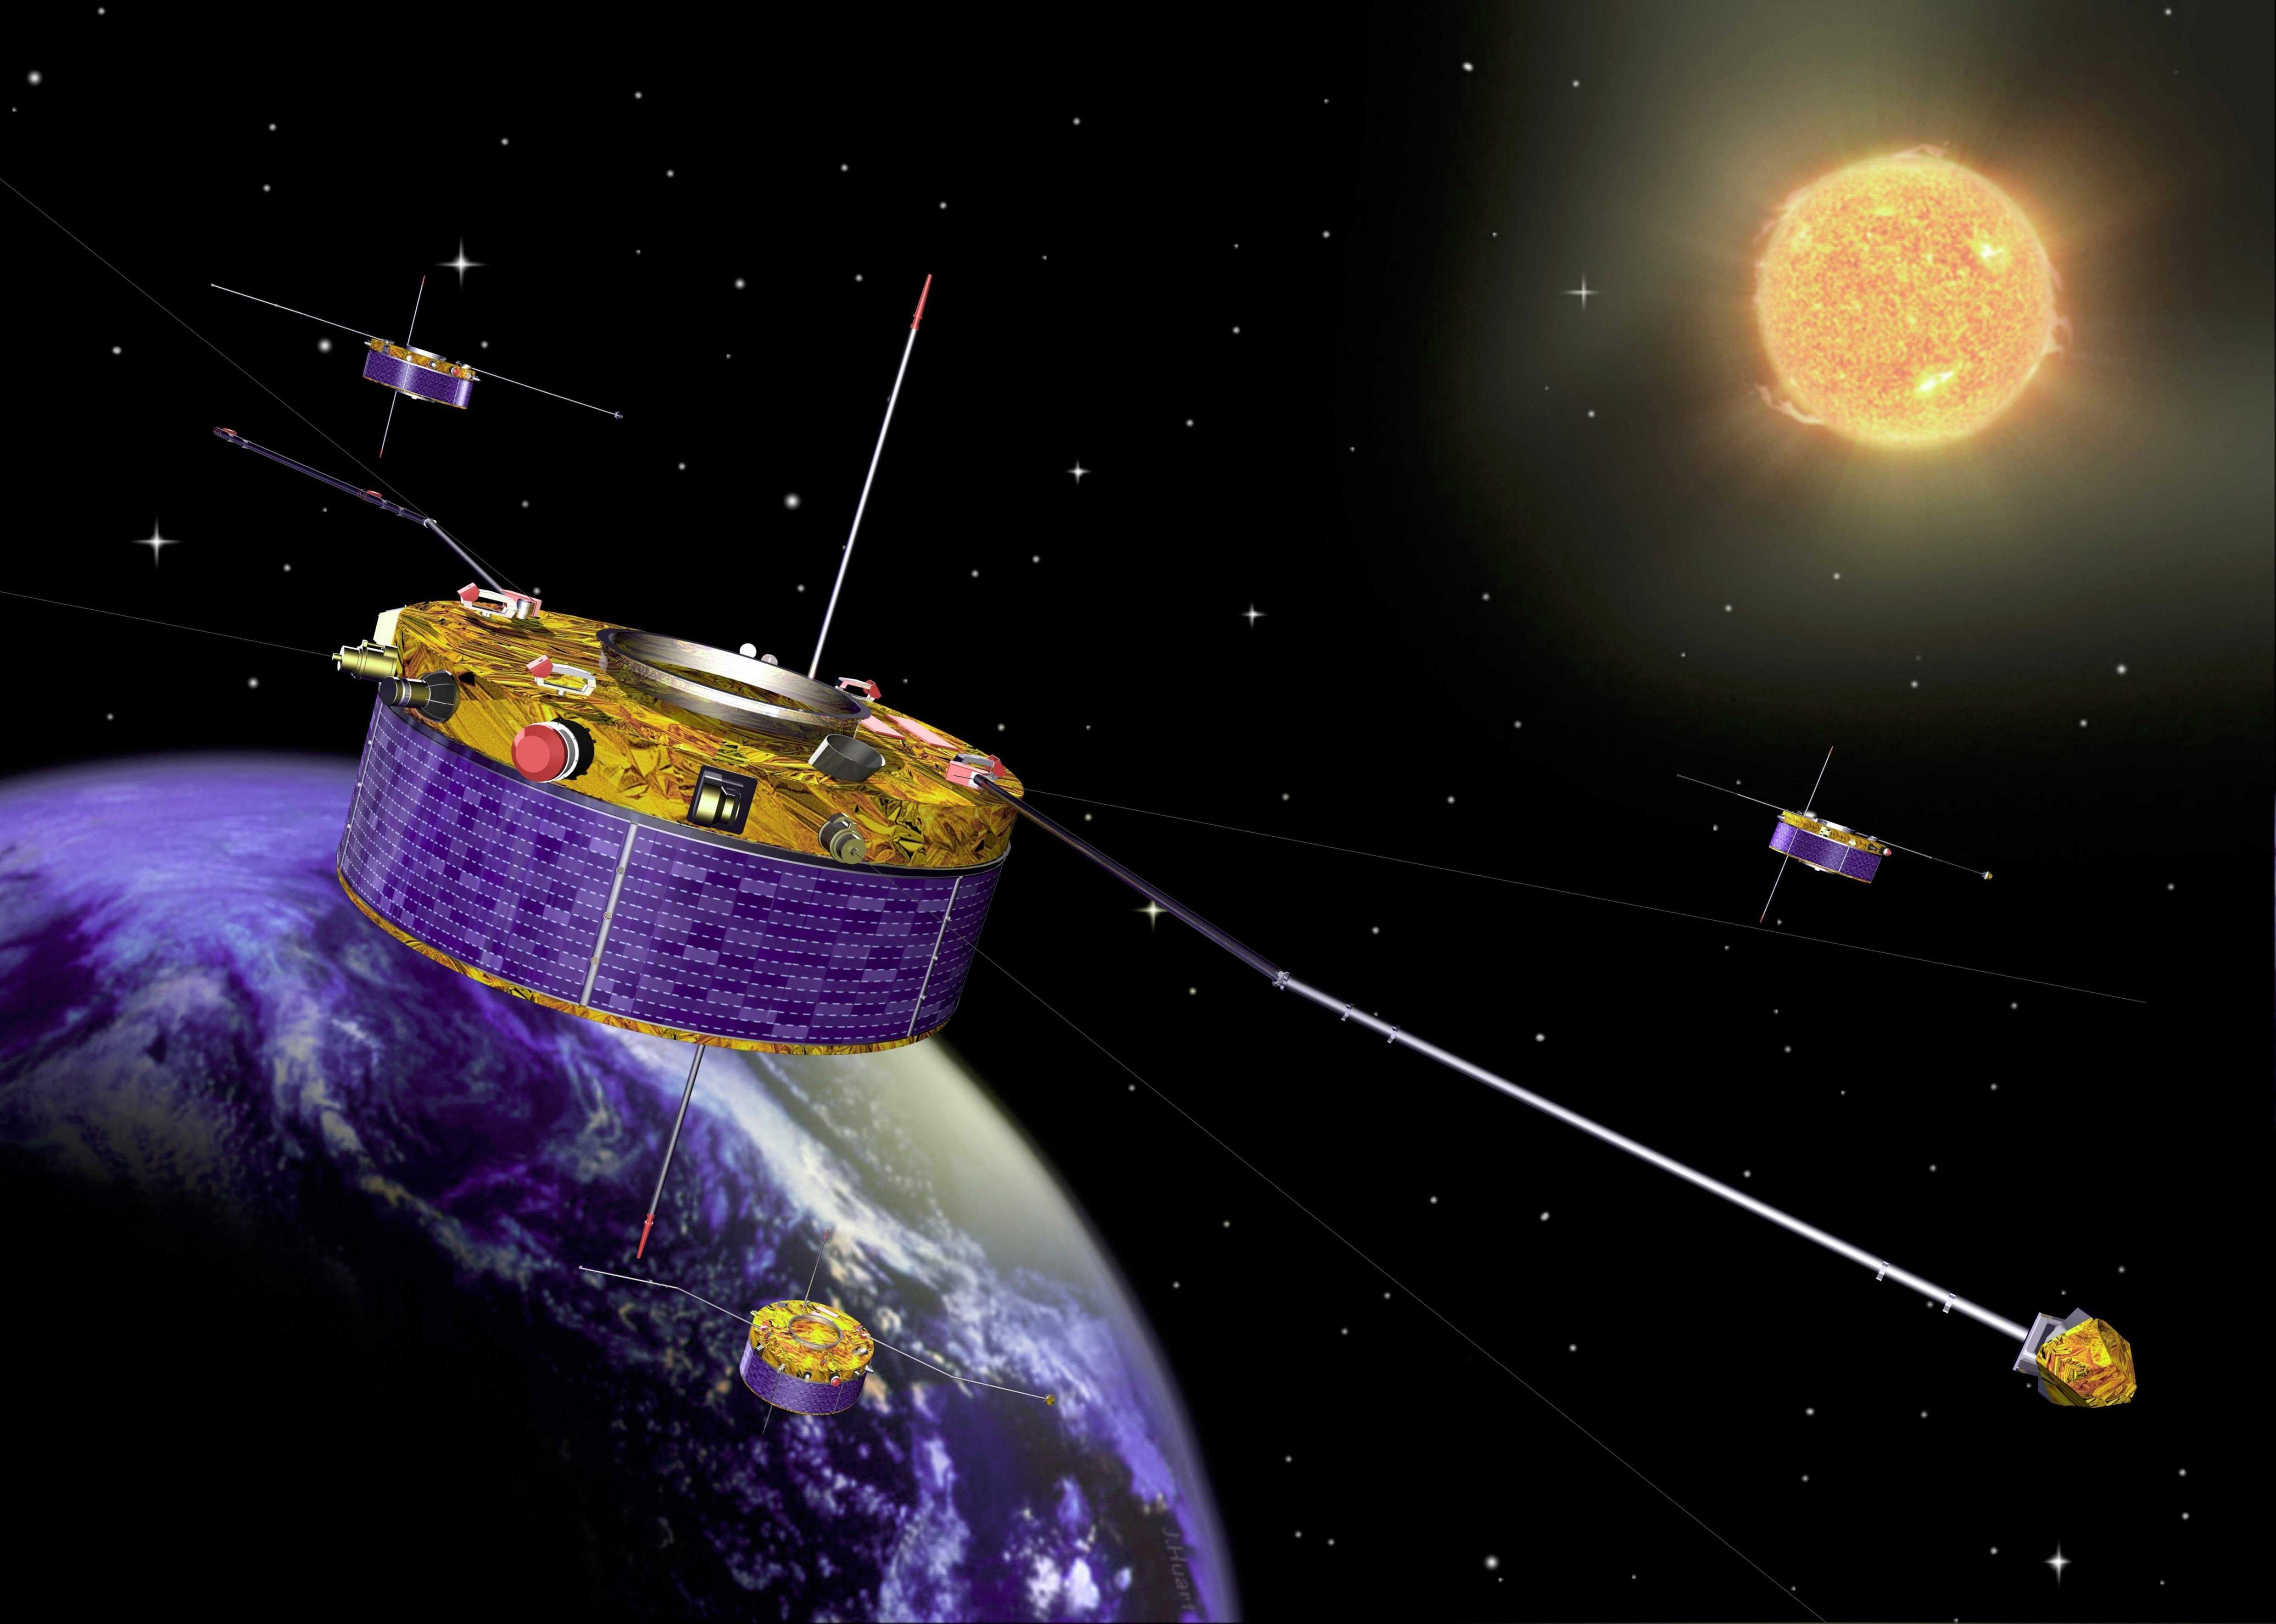 ESAs Cluster mission comprises four identical spacecraft flying in formation 19,000 to 119,000 km (11,800 to 74,000 miles) above Earth. Courtesy of ESA.